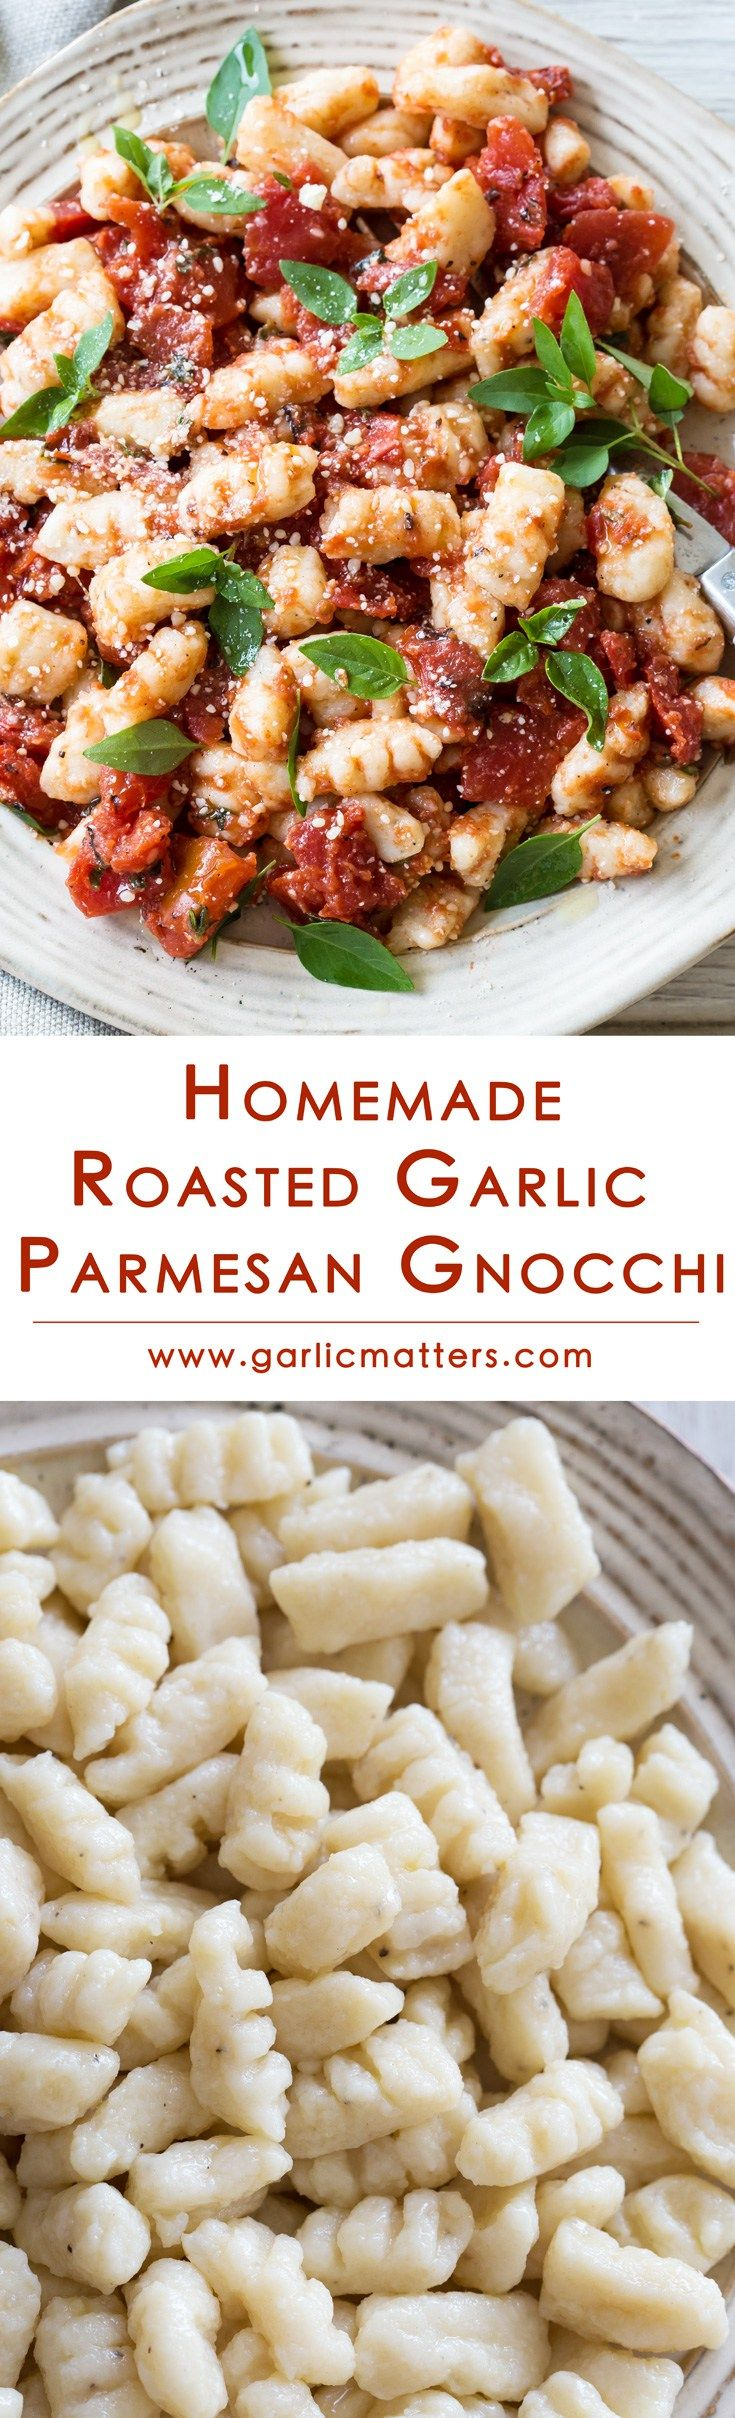 Homemade Roasted Garlic Parmesan Gnocchi with a delicious Tomato Basil Sauce accompaniment are healthy, light, vegetarian and contain no eggs. They are so easy to make! What a great alternative to plain pasta or potatoes! Come on in and check out my foolproof, step by step flavoured potato gnocchi recipe with 9 useful tips!